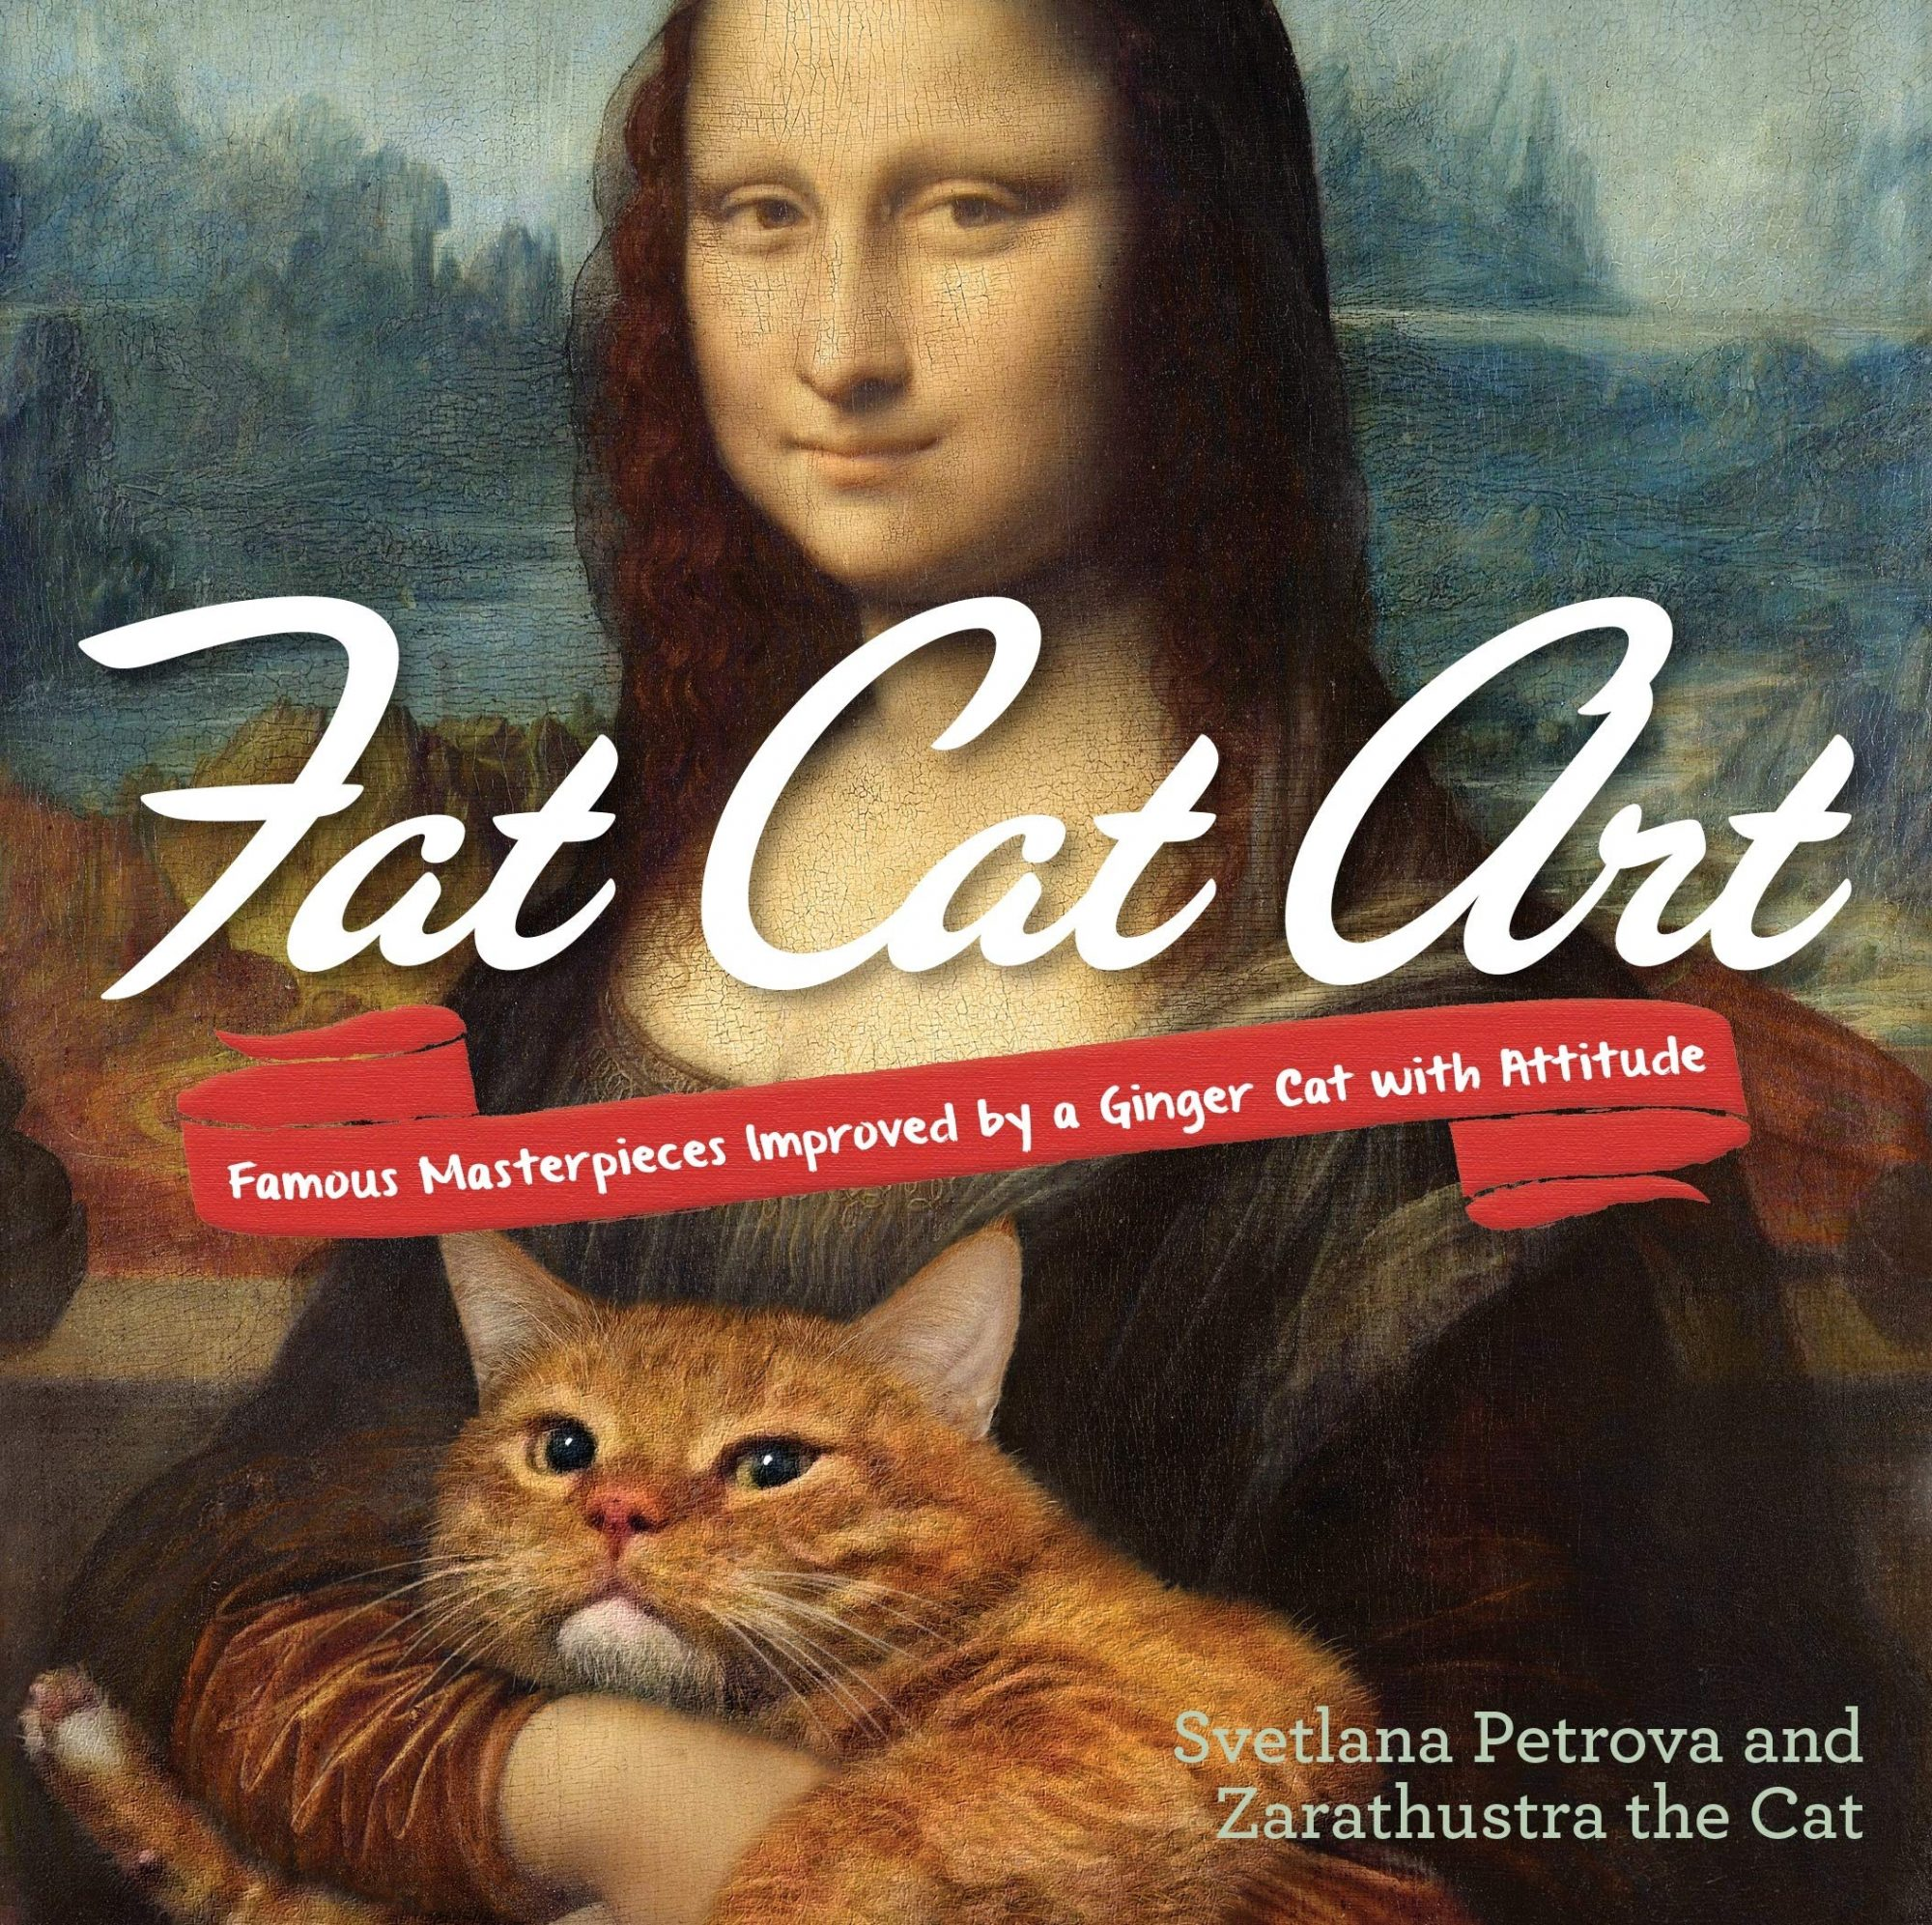 Cover of book with Mona Lisa and fat cat on it